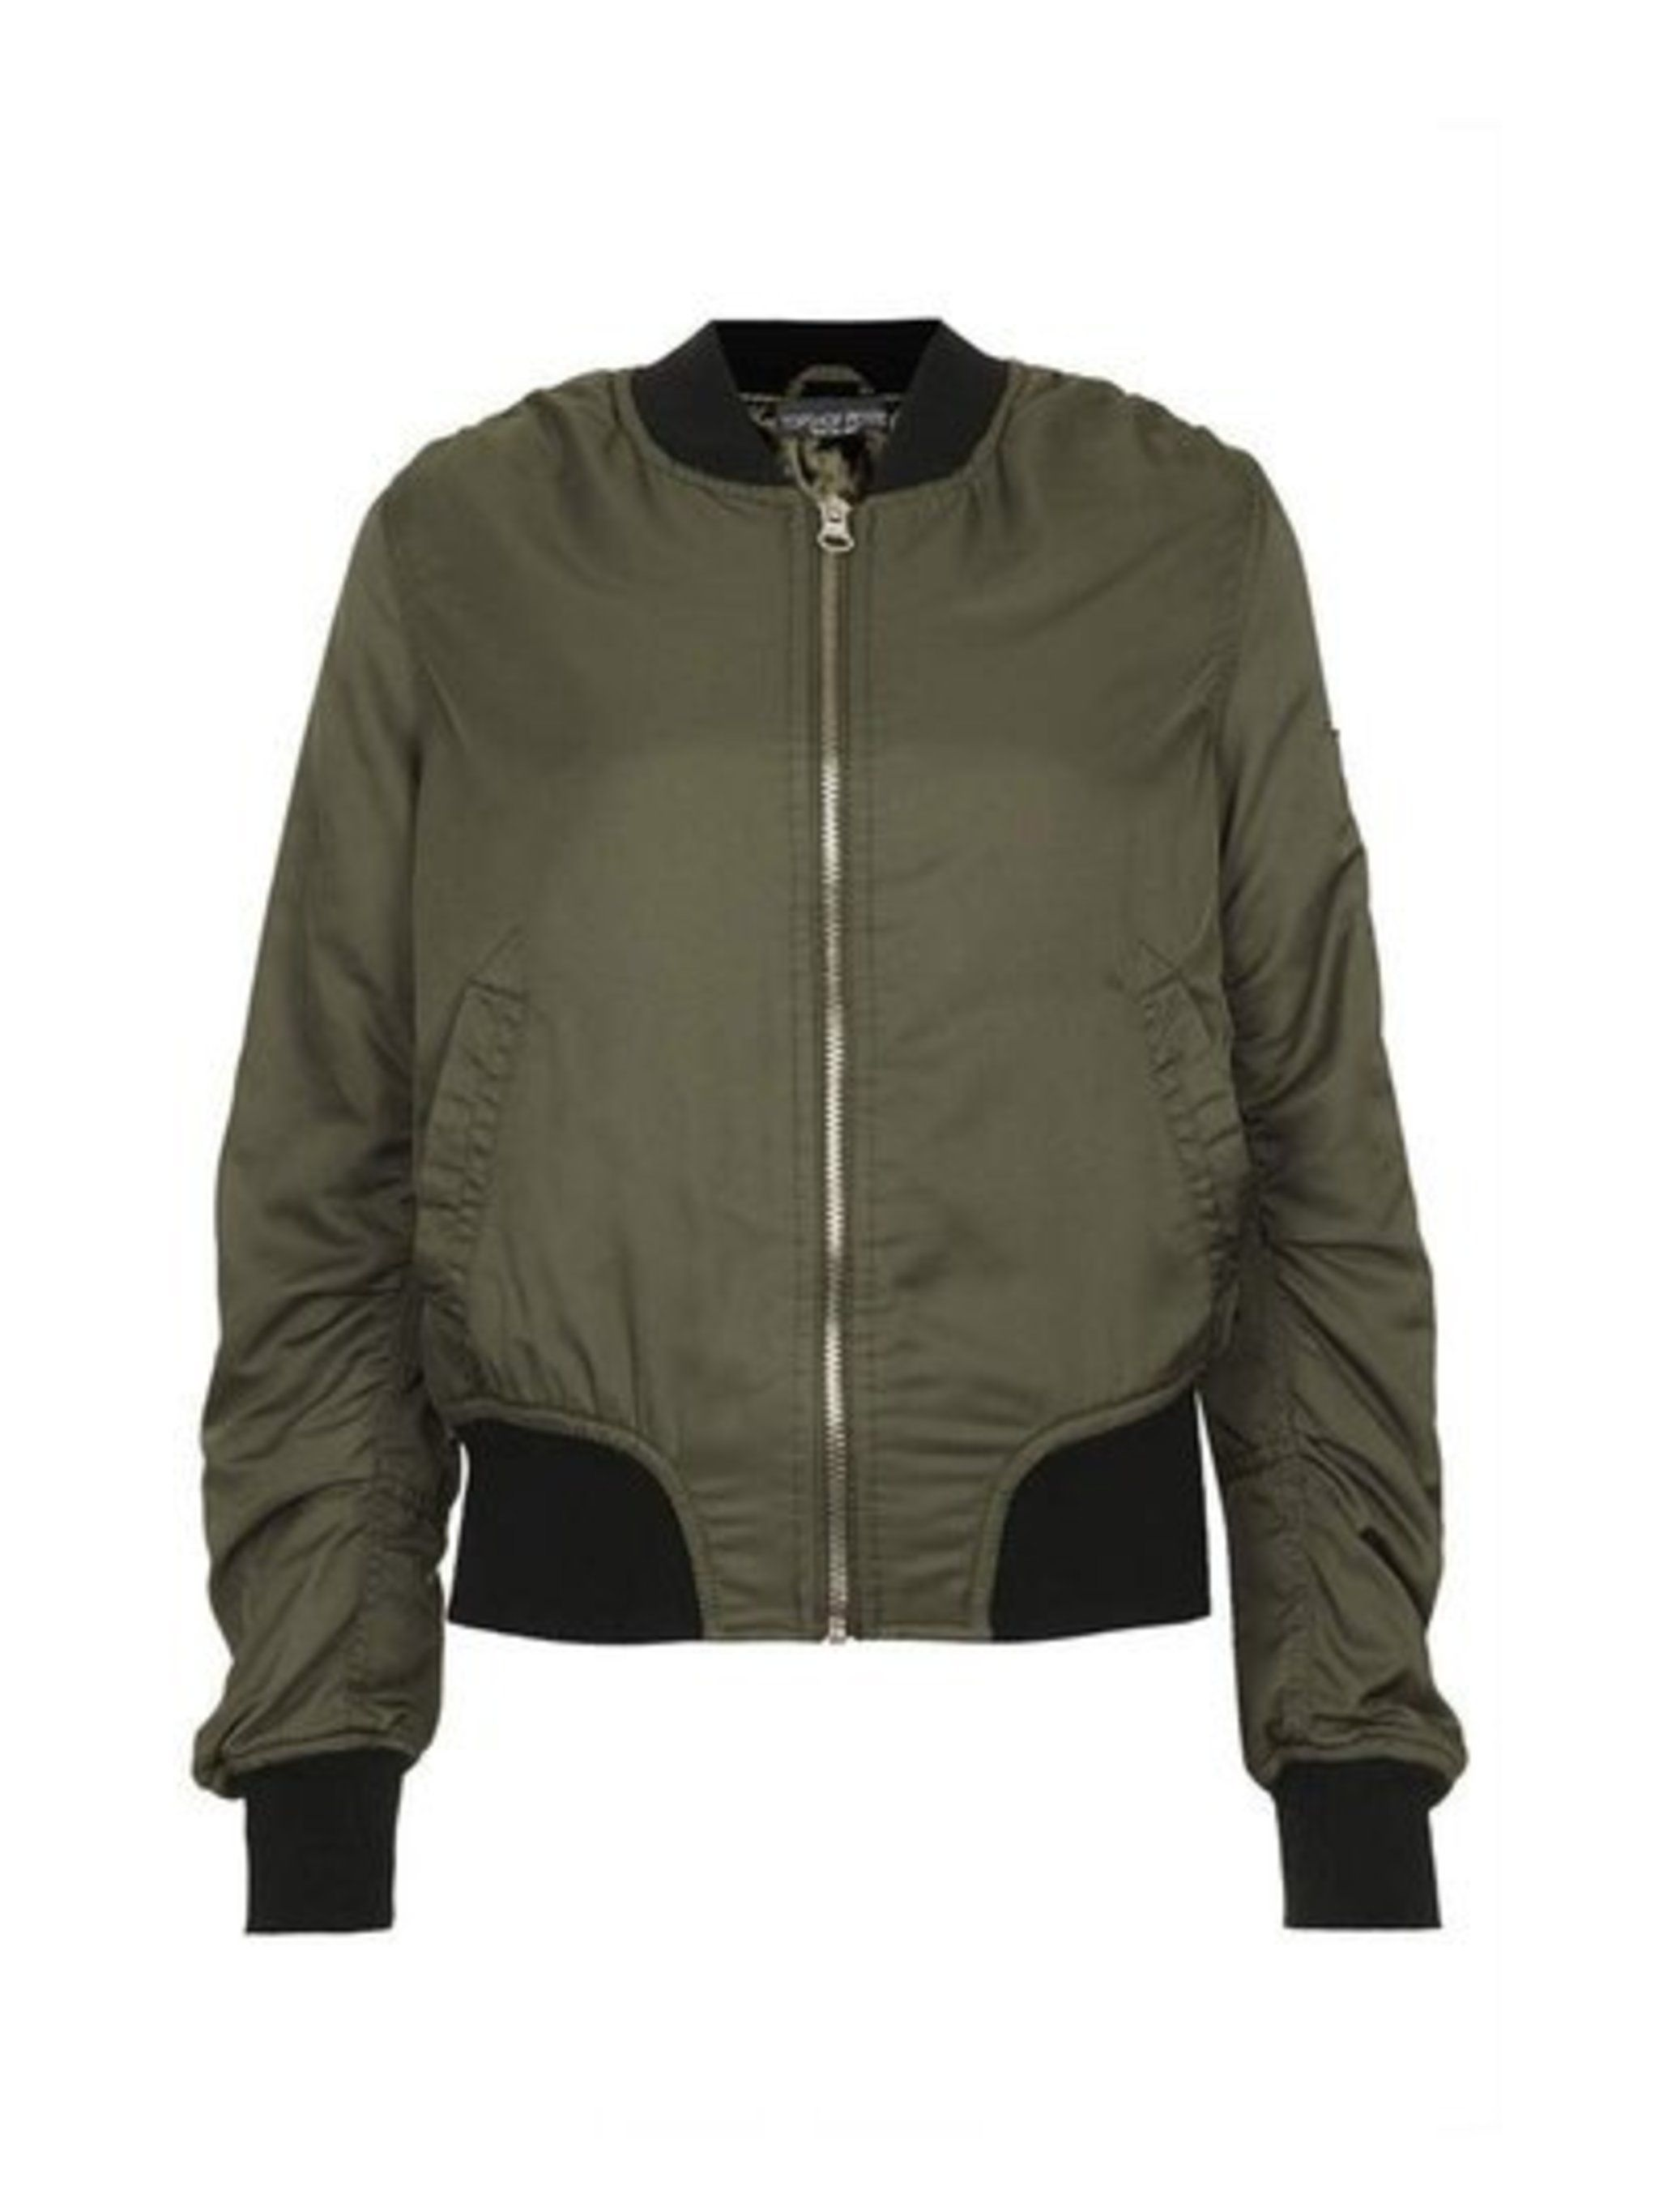 The MA1 flight jacket was spotted on more a/w 2014 catwalks than we could count.Topshop jacket, £55